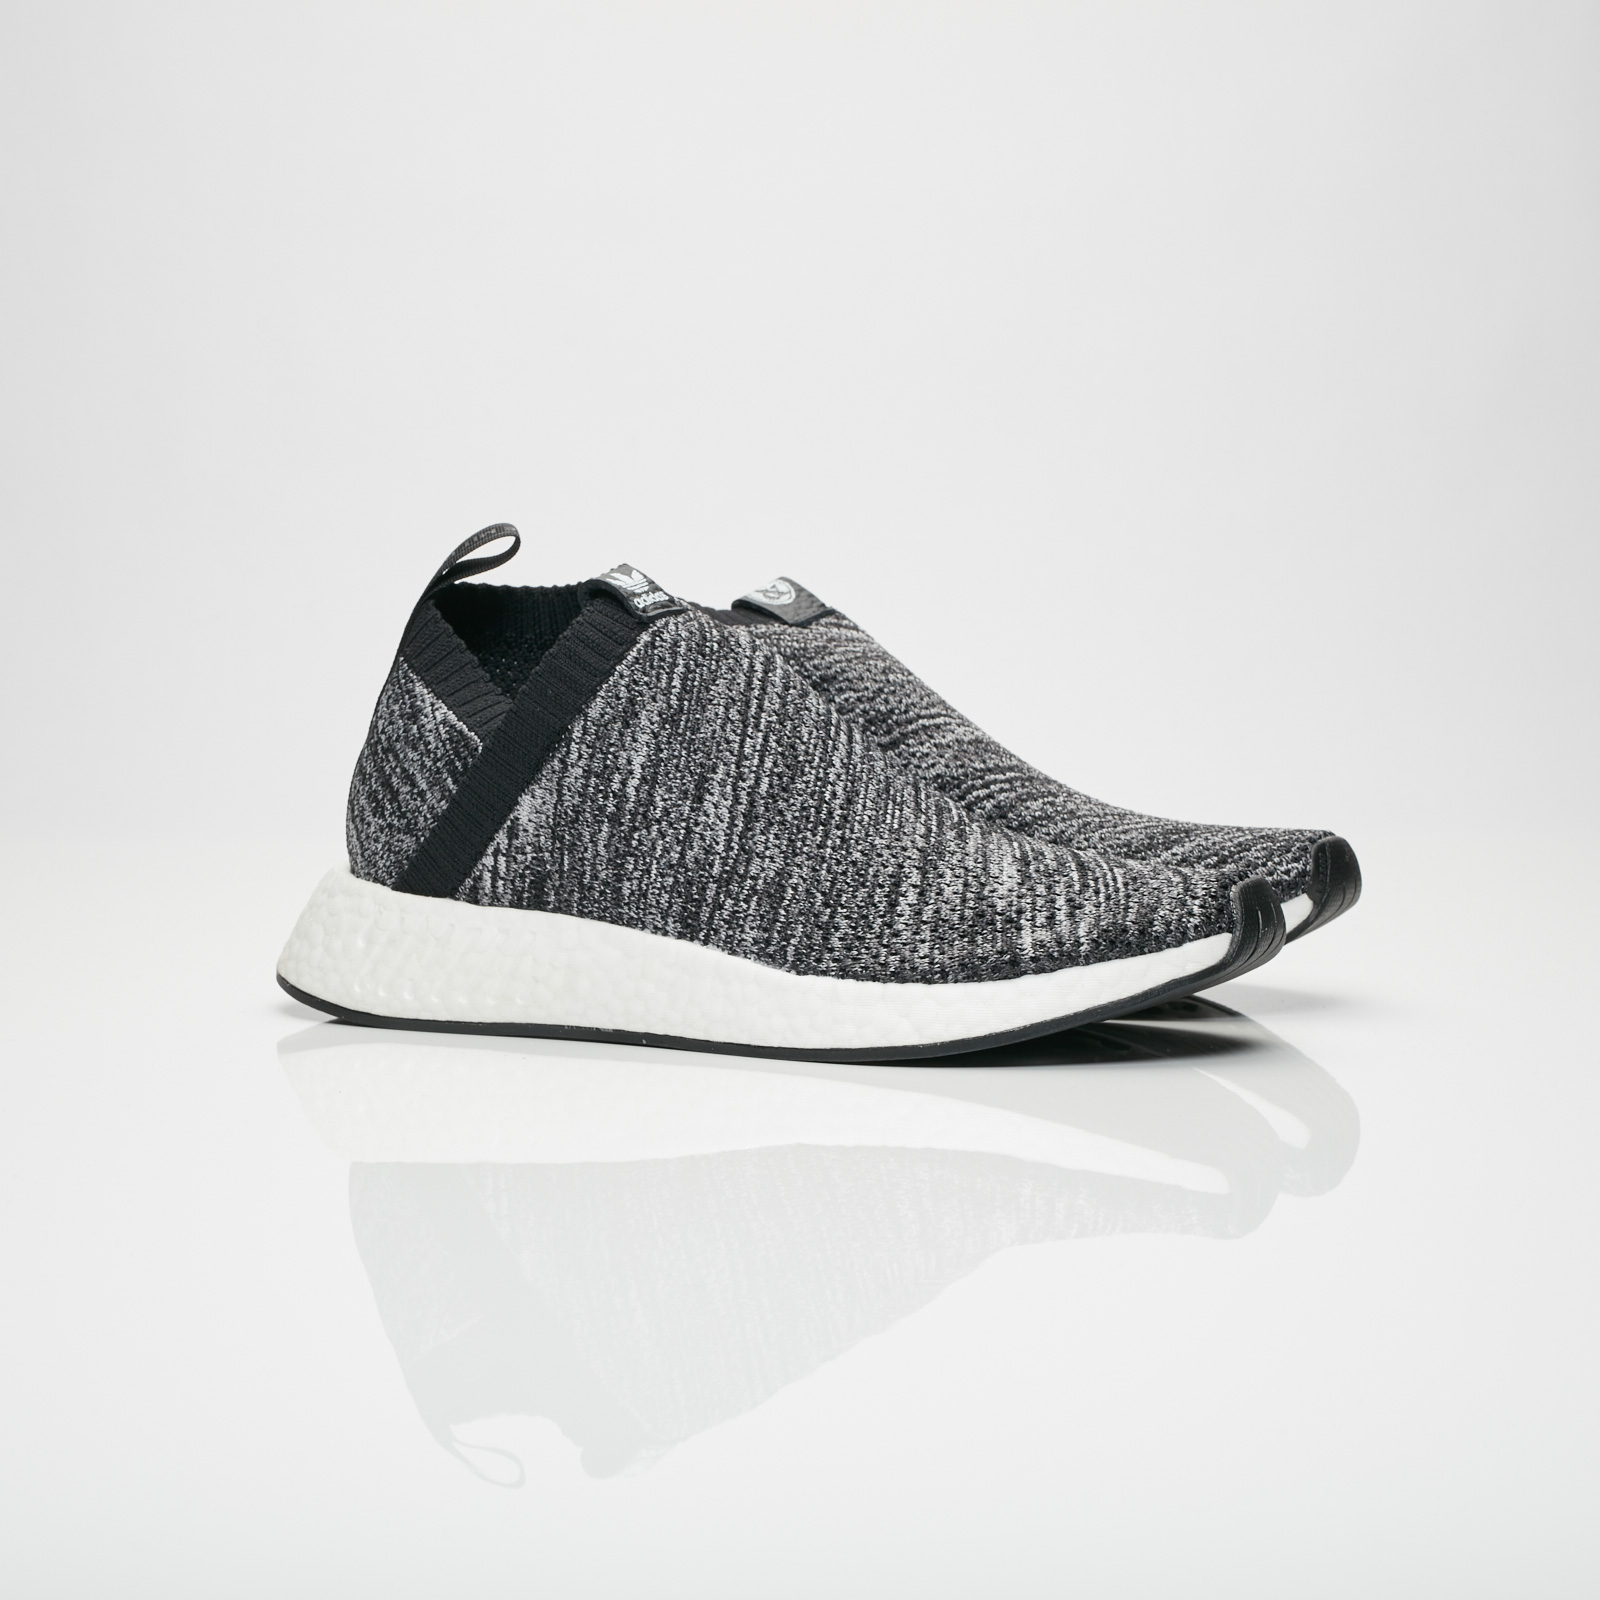 adidas NMD CS2 PK x United Arrows & Sons Da9089